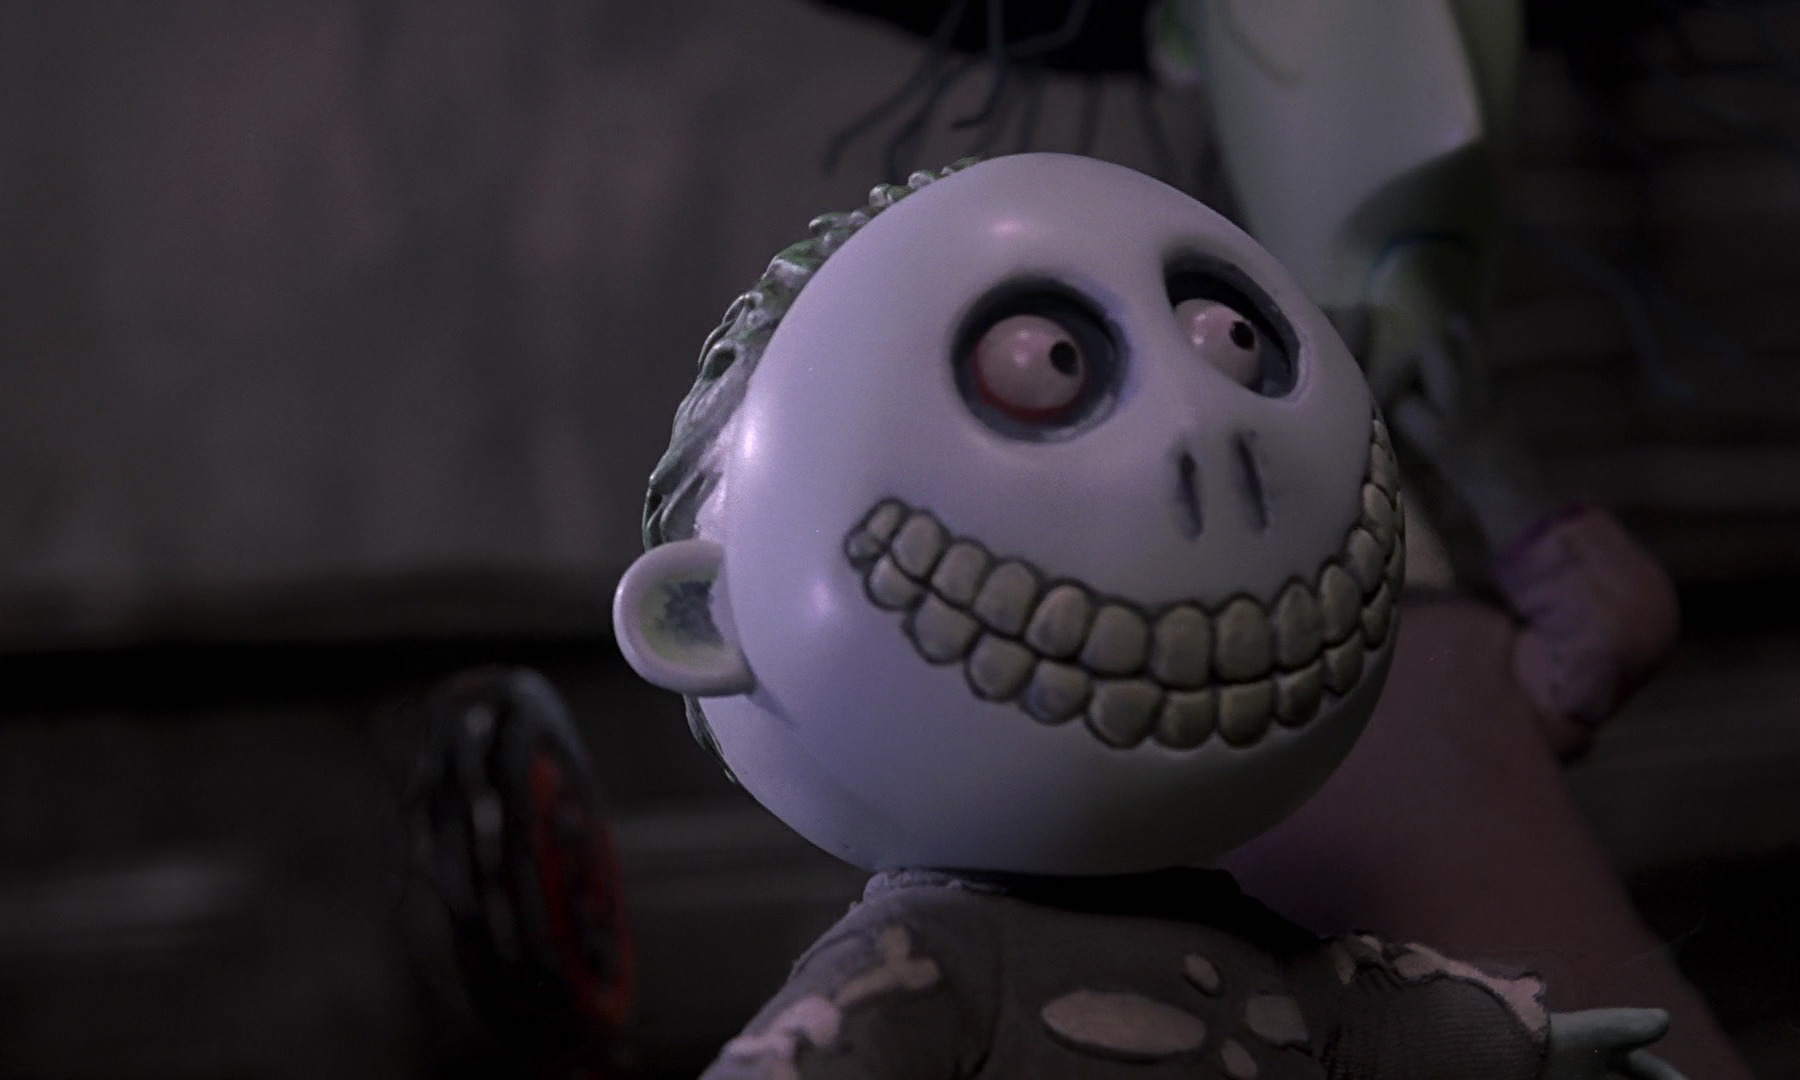 Snap Lock The Nightmare Before Christmas Wiki Fandom powered by ...